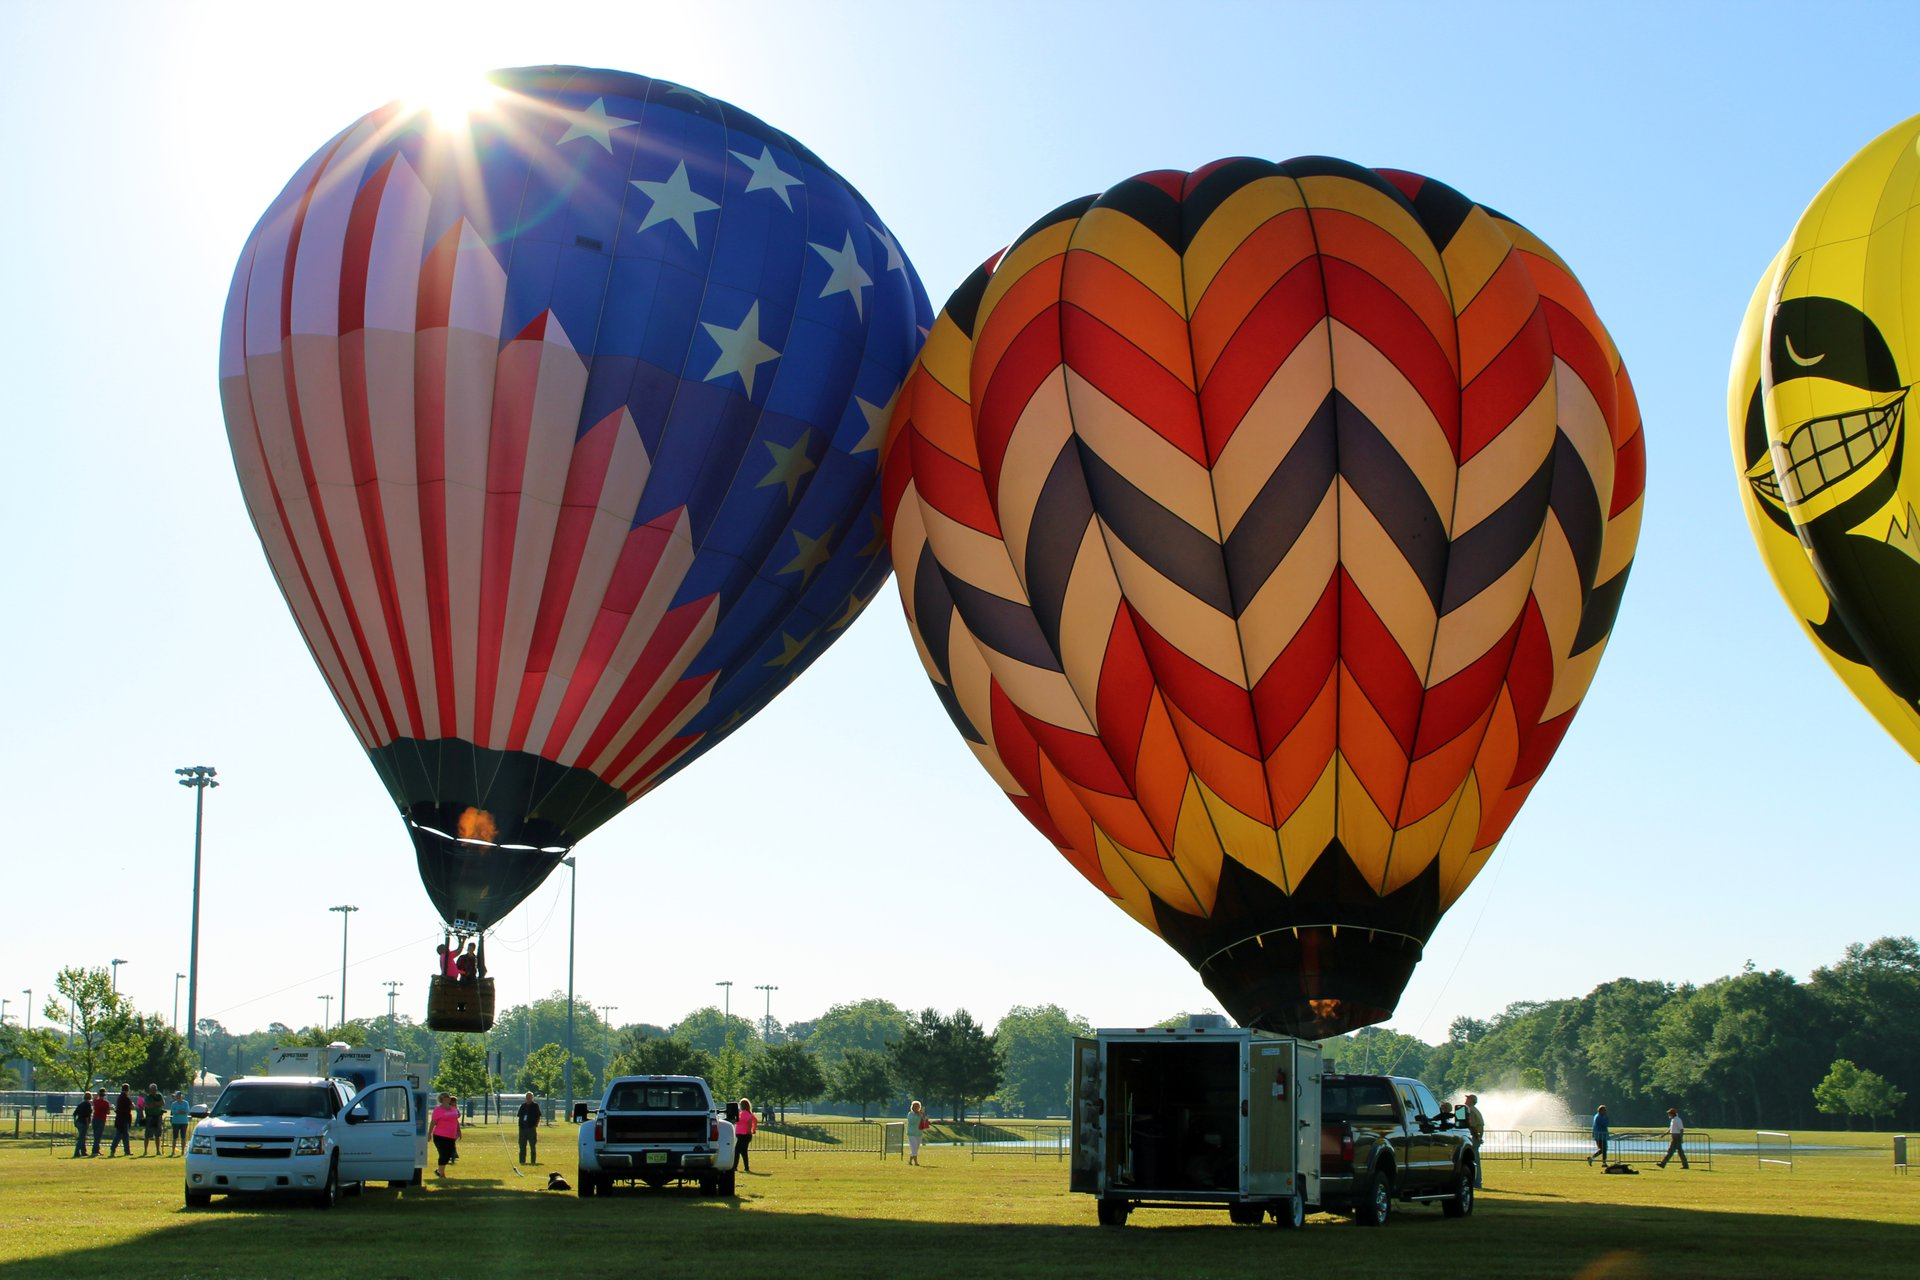 Gulf Coast Hot Air Balloon Festival in Alabama - Best Season 2020